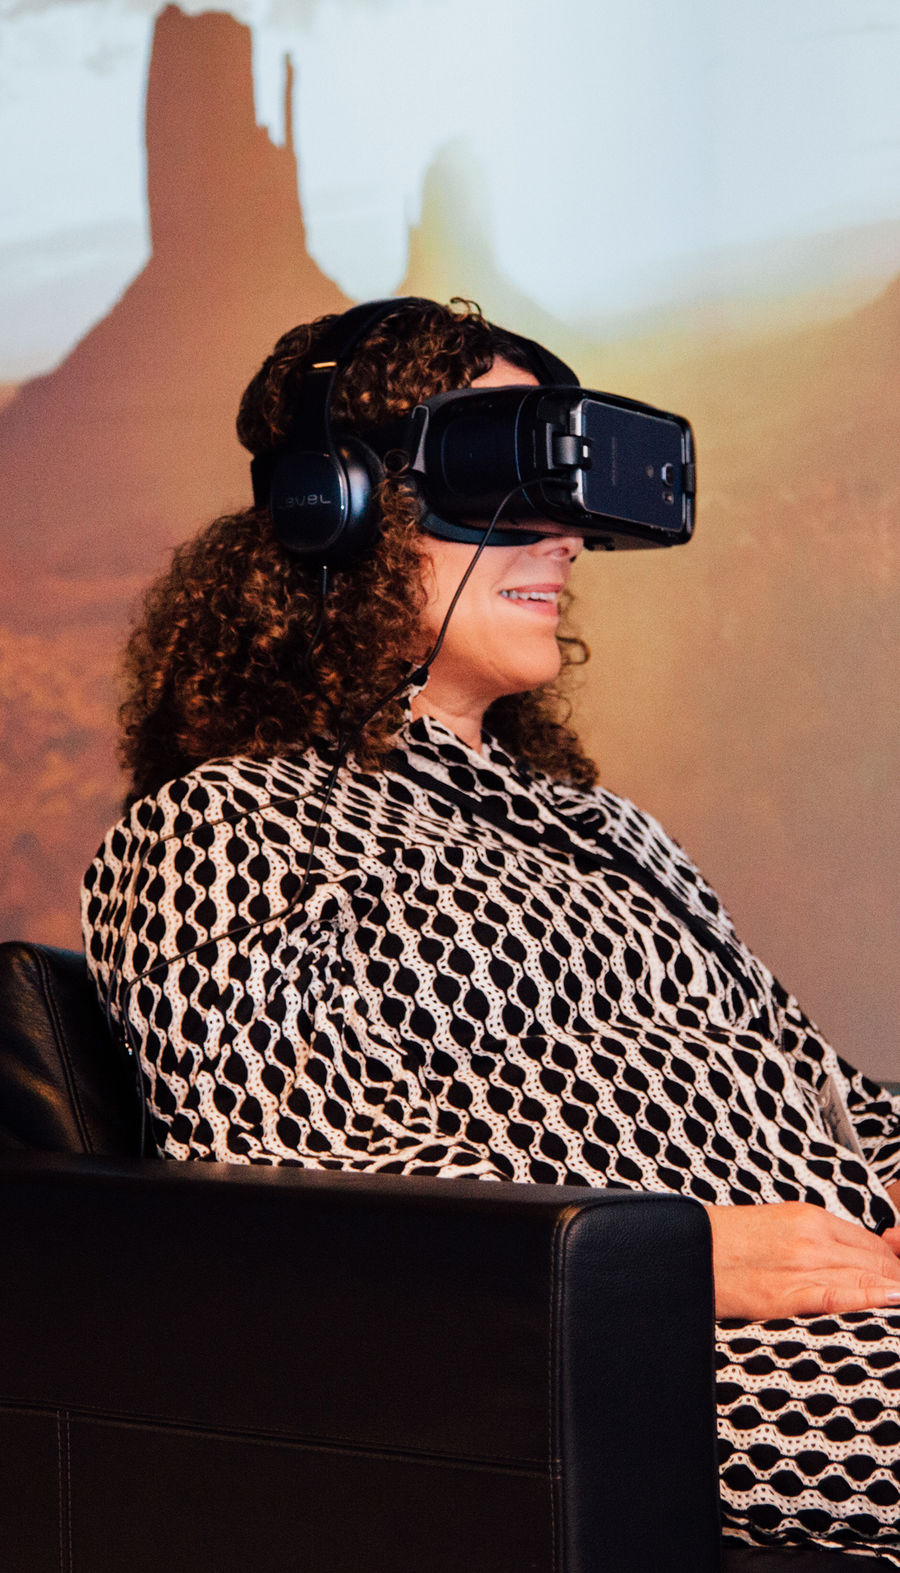 Tech Trends, Part One: Get Ready — VR & AR Are About To Change Brand Experiences